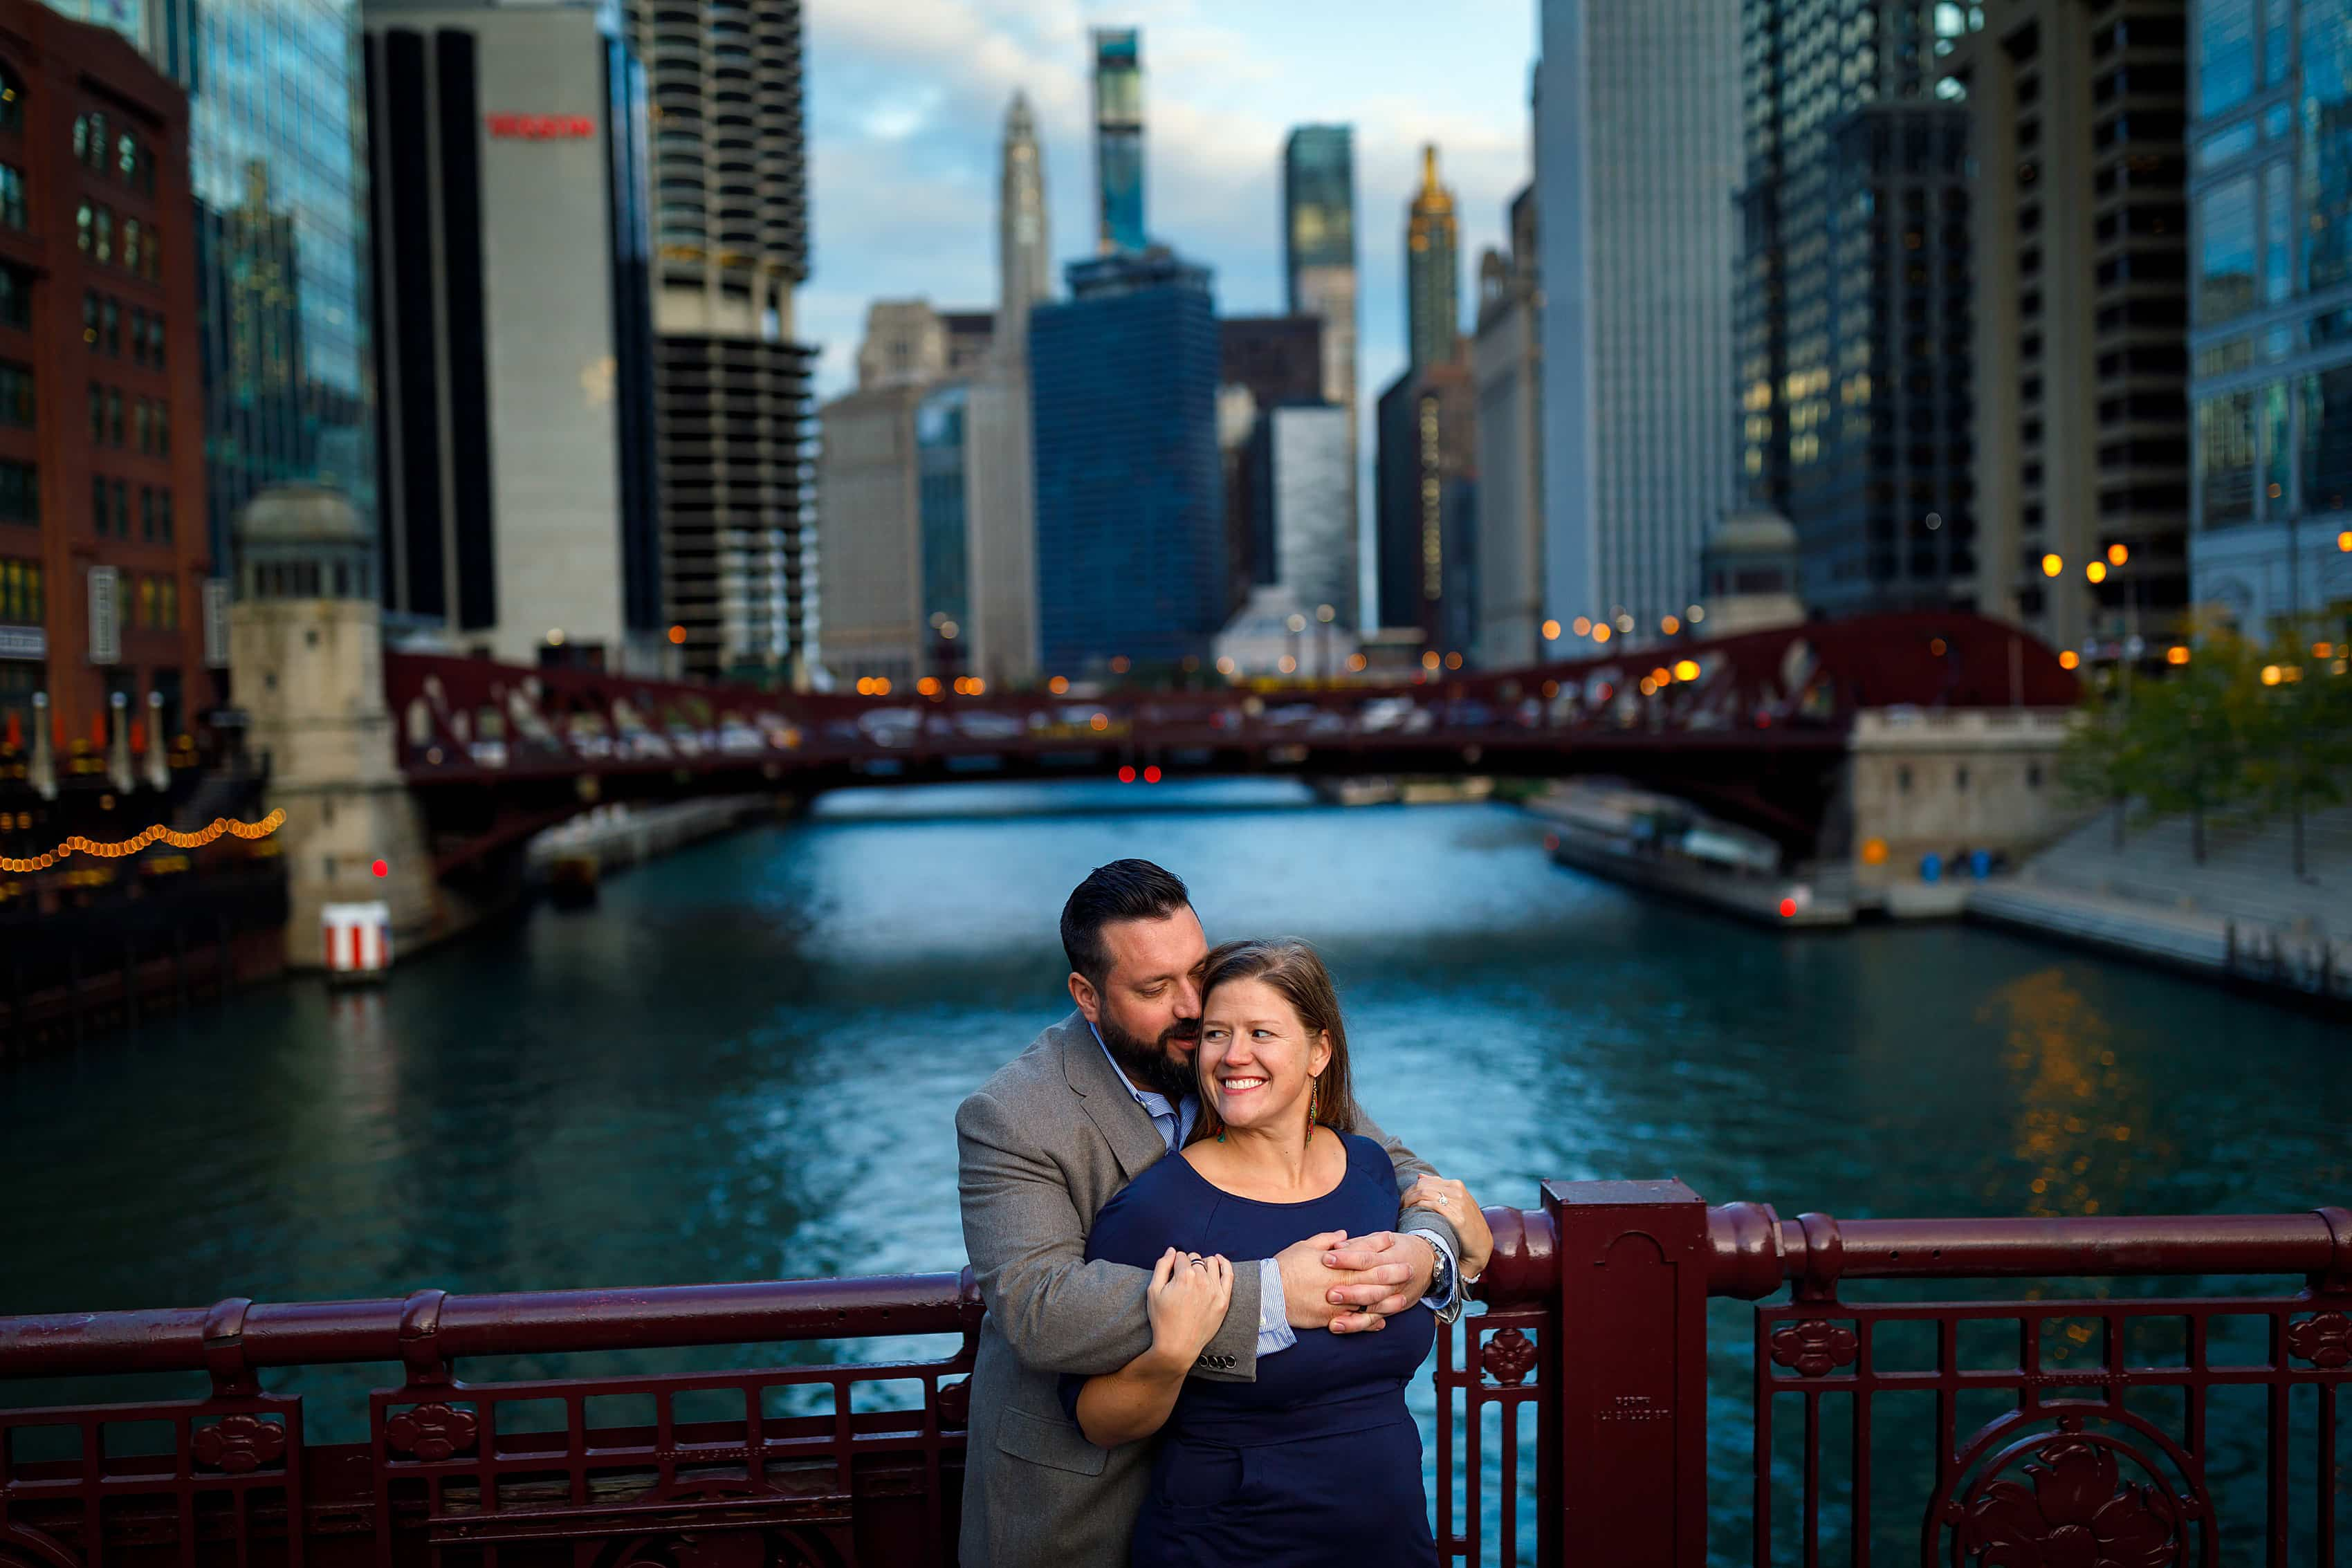 Couple poses for engagement photo on LaSalle Street bridge in downtown Chicago with the river and skyline in the background